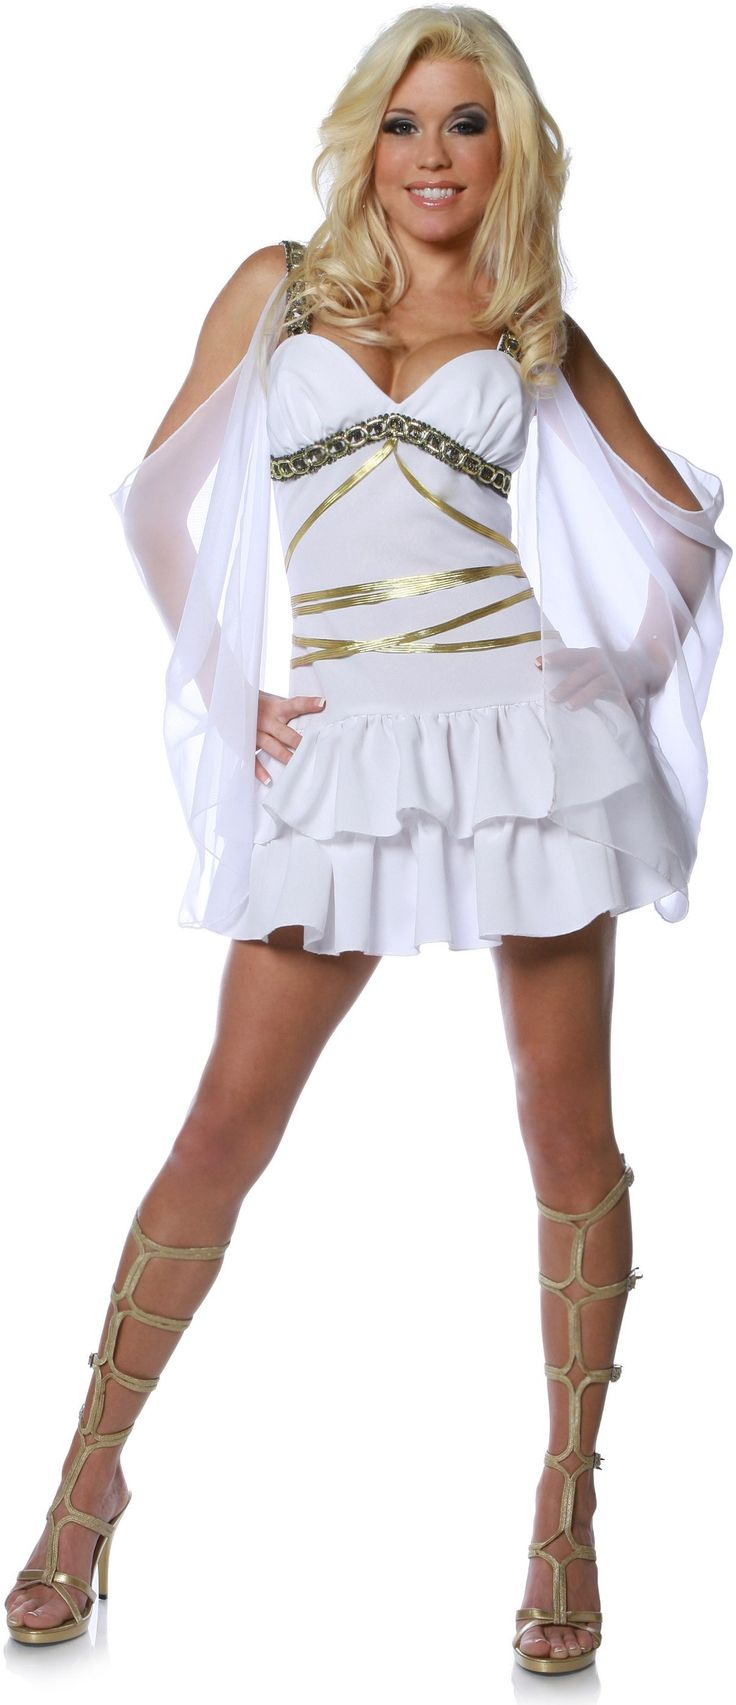 Aphrodite Adult Costume from BuyCostumes.com